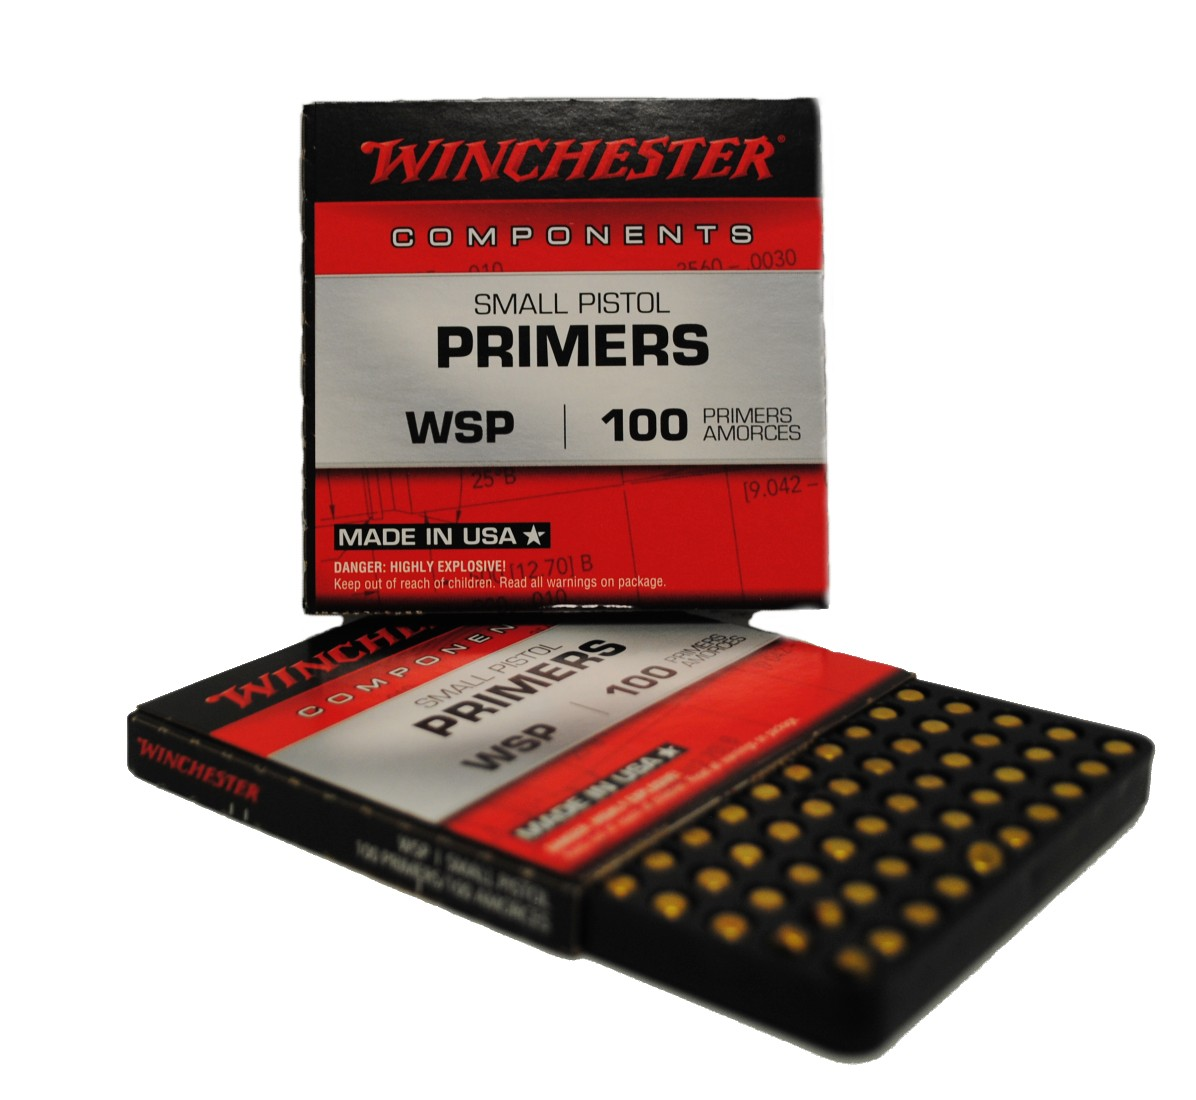 Amorces WINCHESTER small pistol le 100 WSP